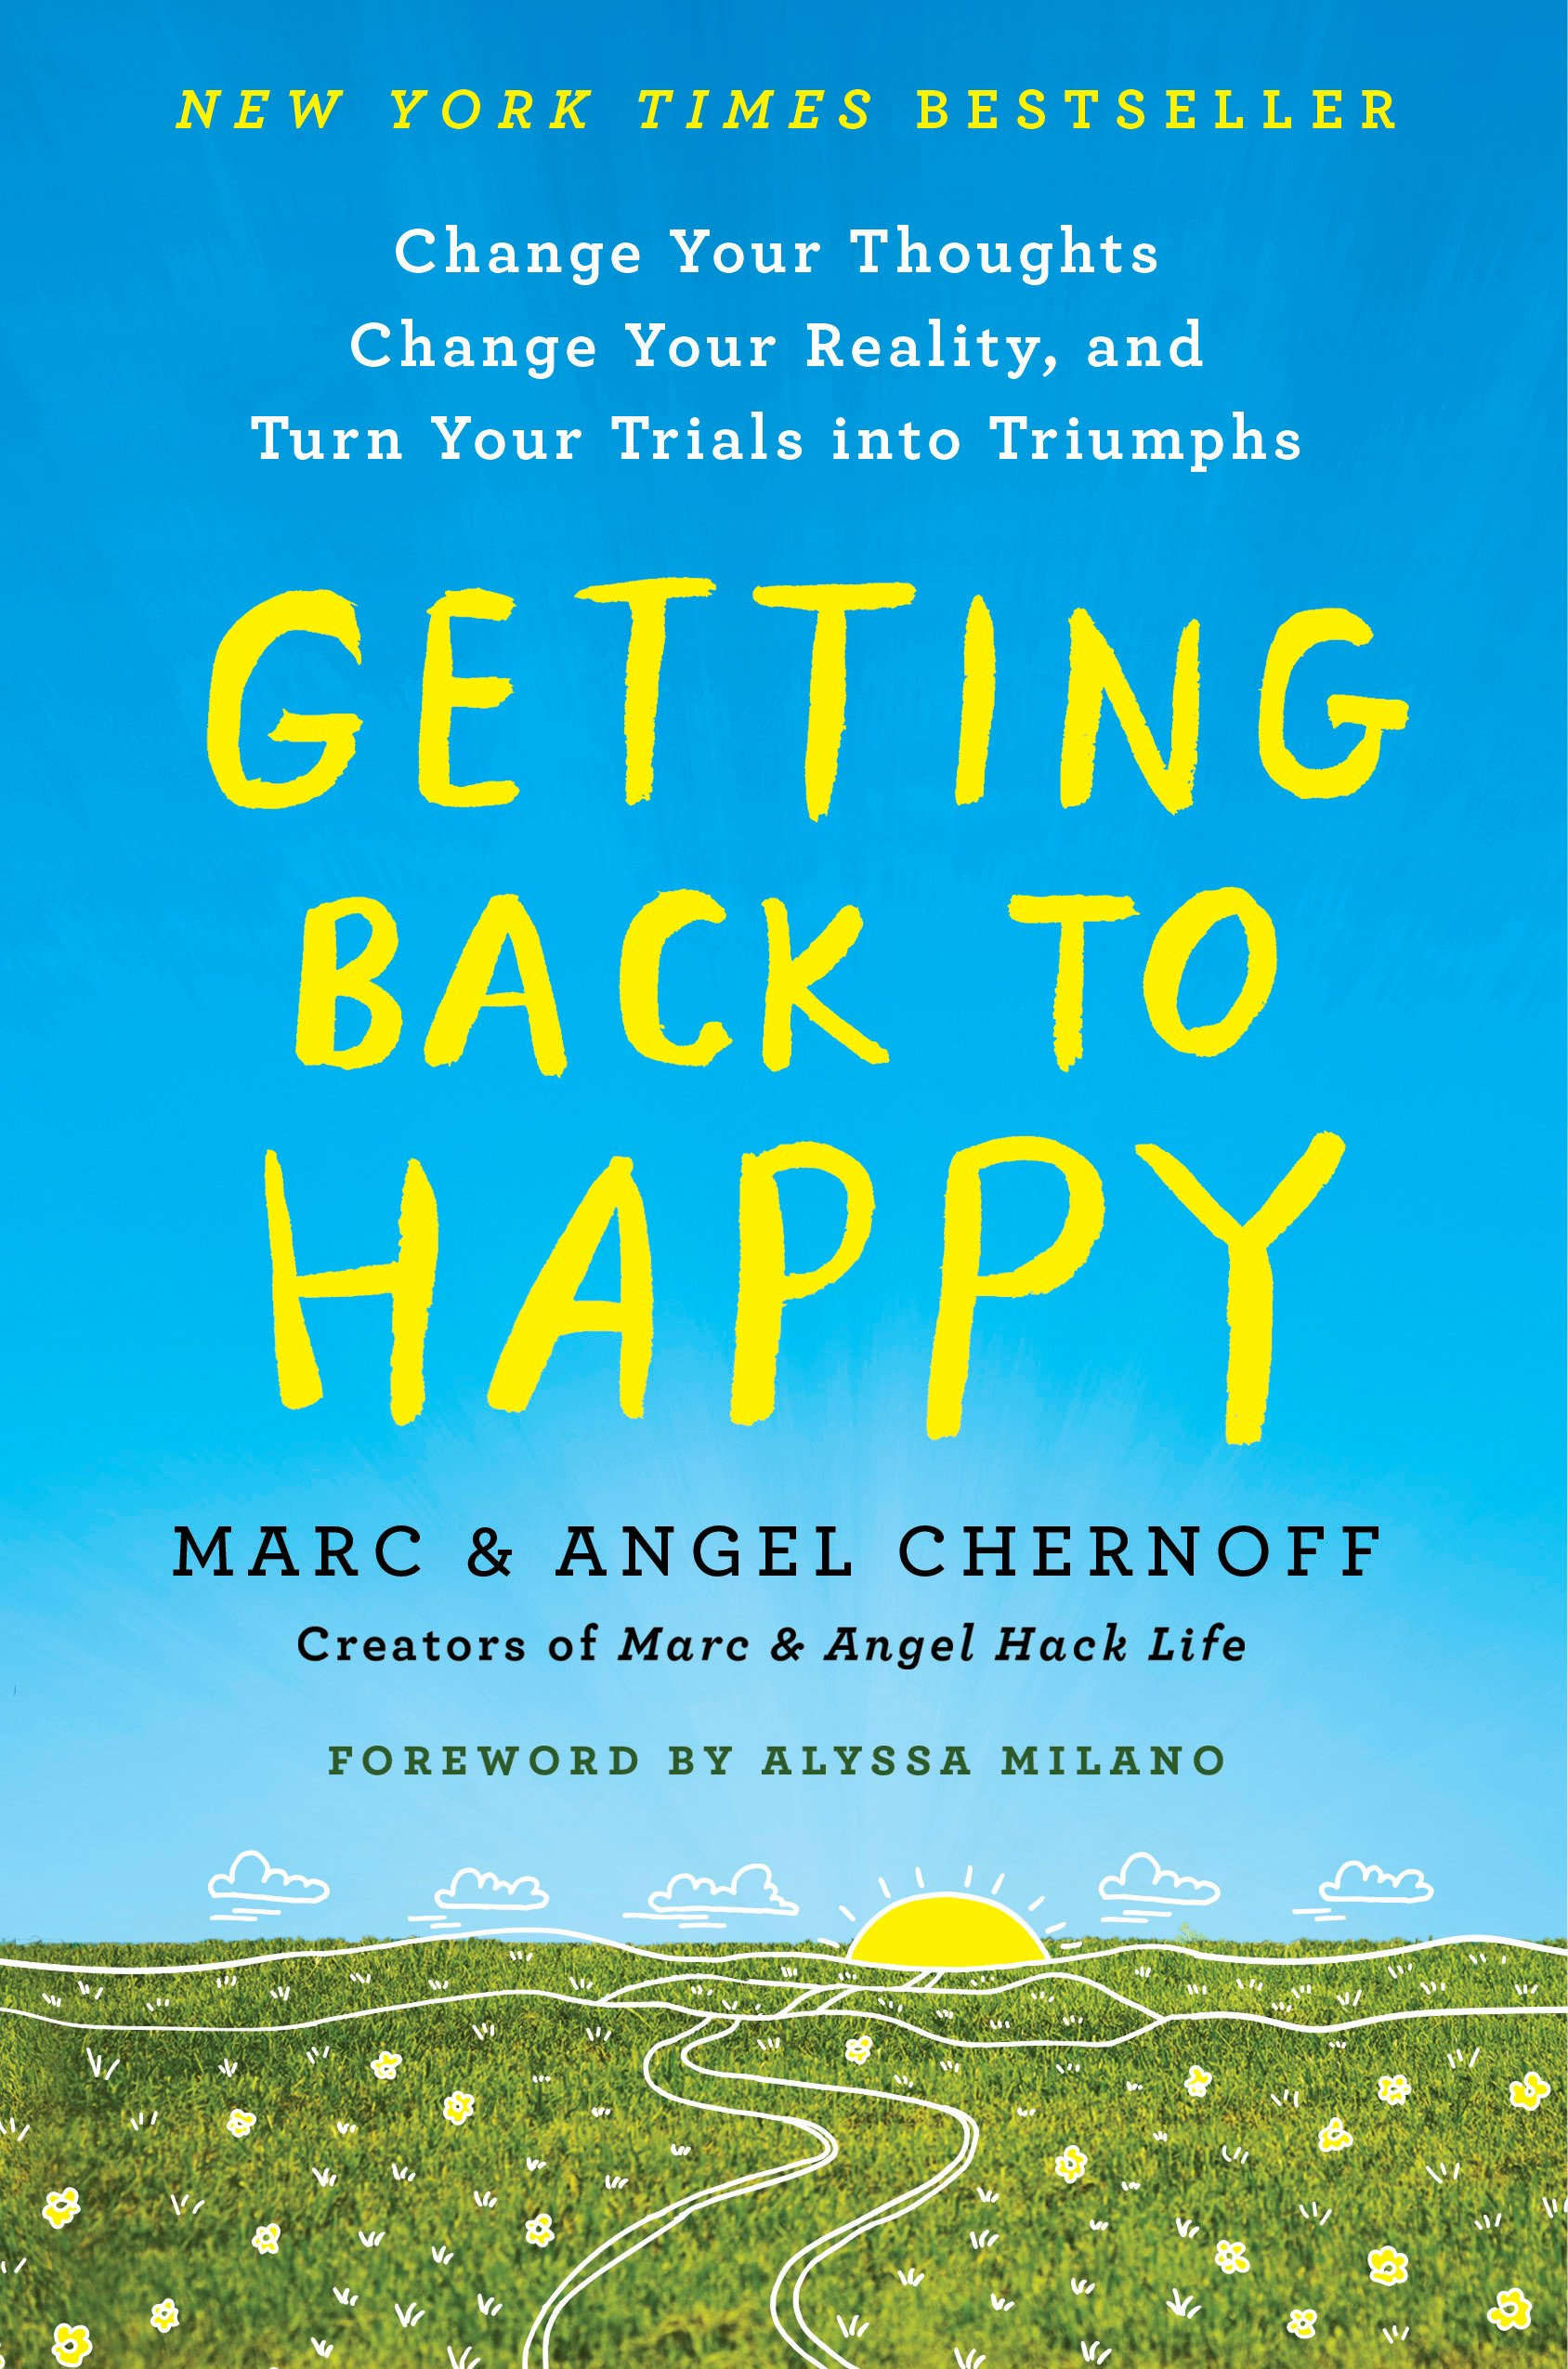 Getting Back to Happy: Change Your Thoughts, Change Your Reality, and Turn  Your Trials into Triumphs: Marc Chernoff, Angel Chernoff, Alyssa Milano: ...